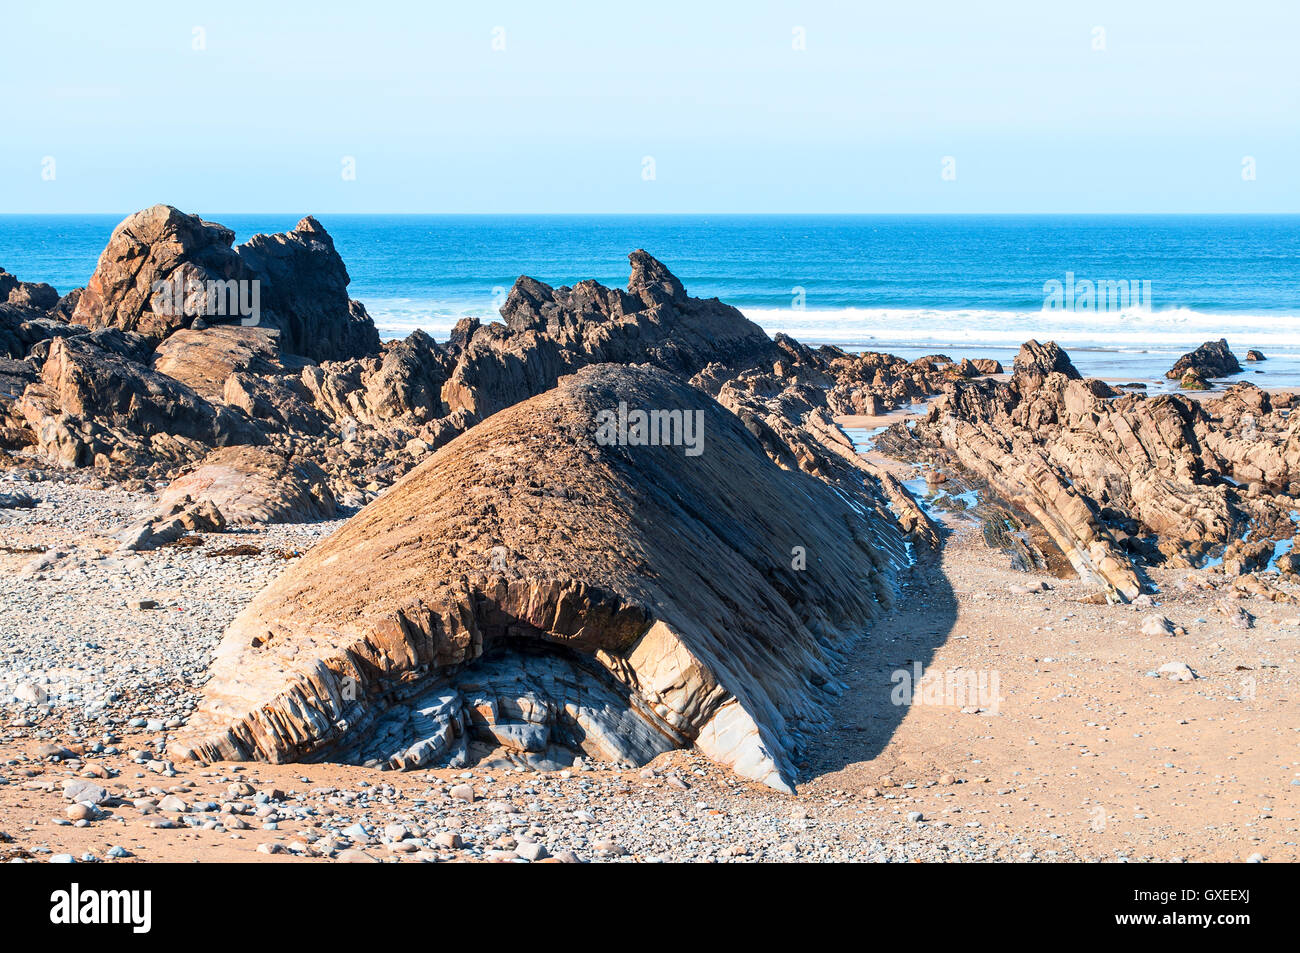 An anticline fold on the beach at Bude in north Cornwall, England, UK - Stock Image